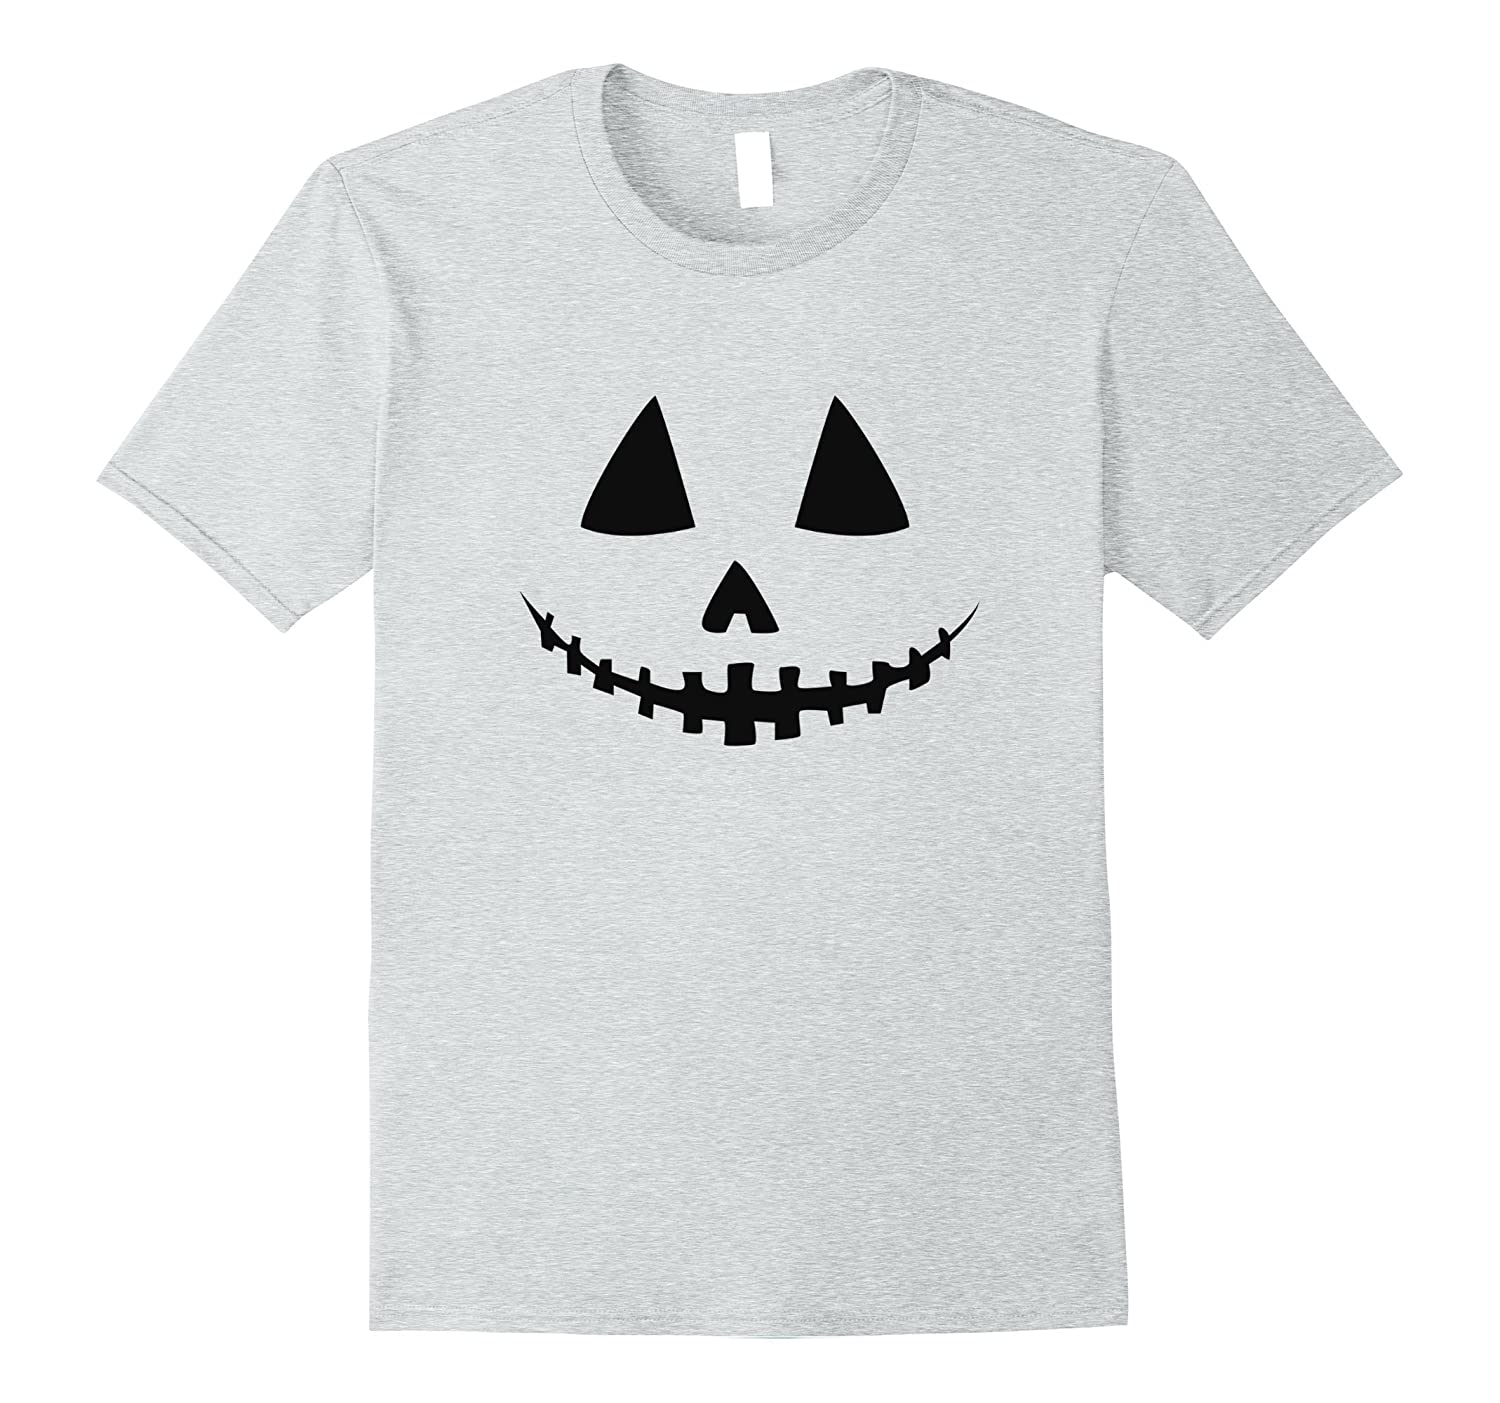 Stitch Mouth Jackolantern T-Shirt Funny Halloween Costume-Art